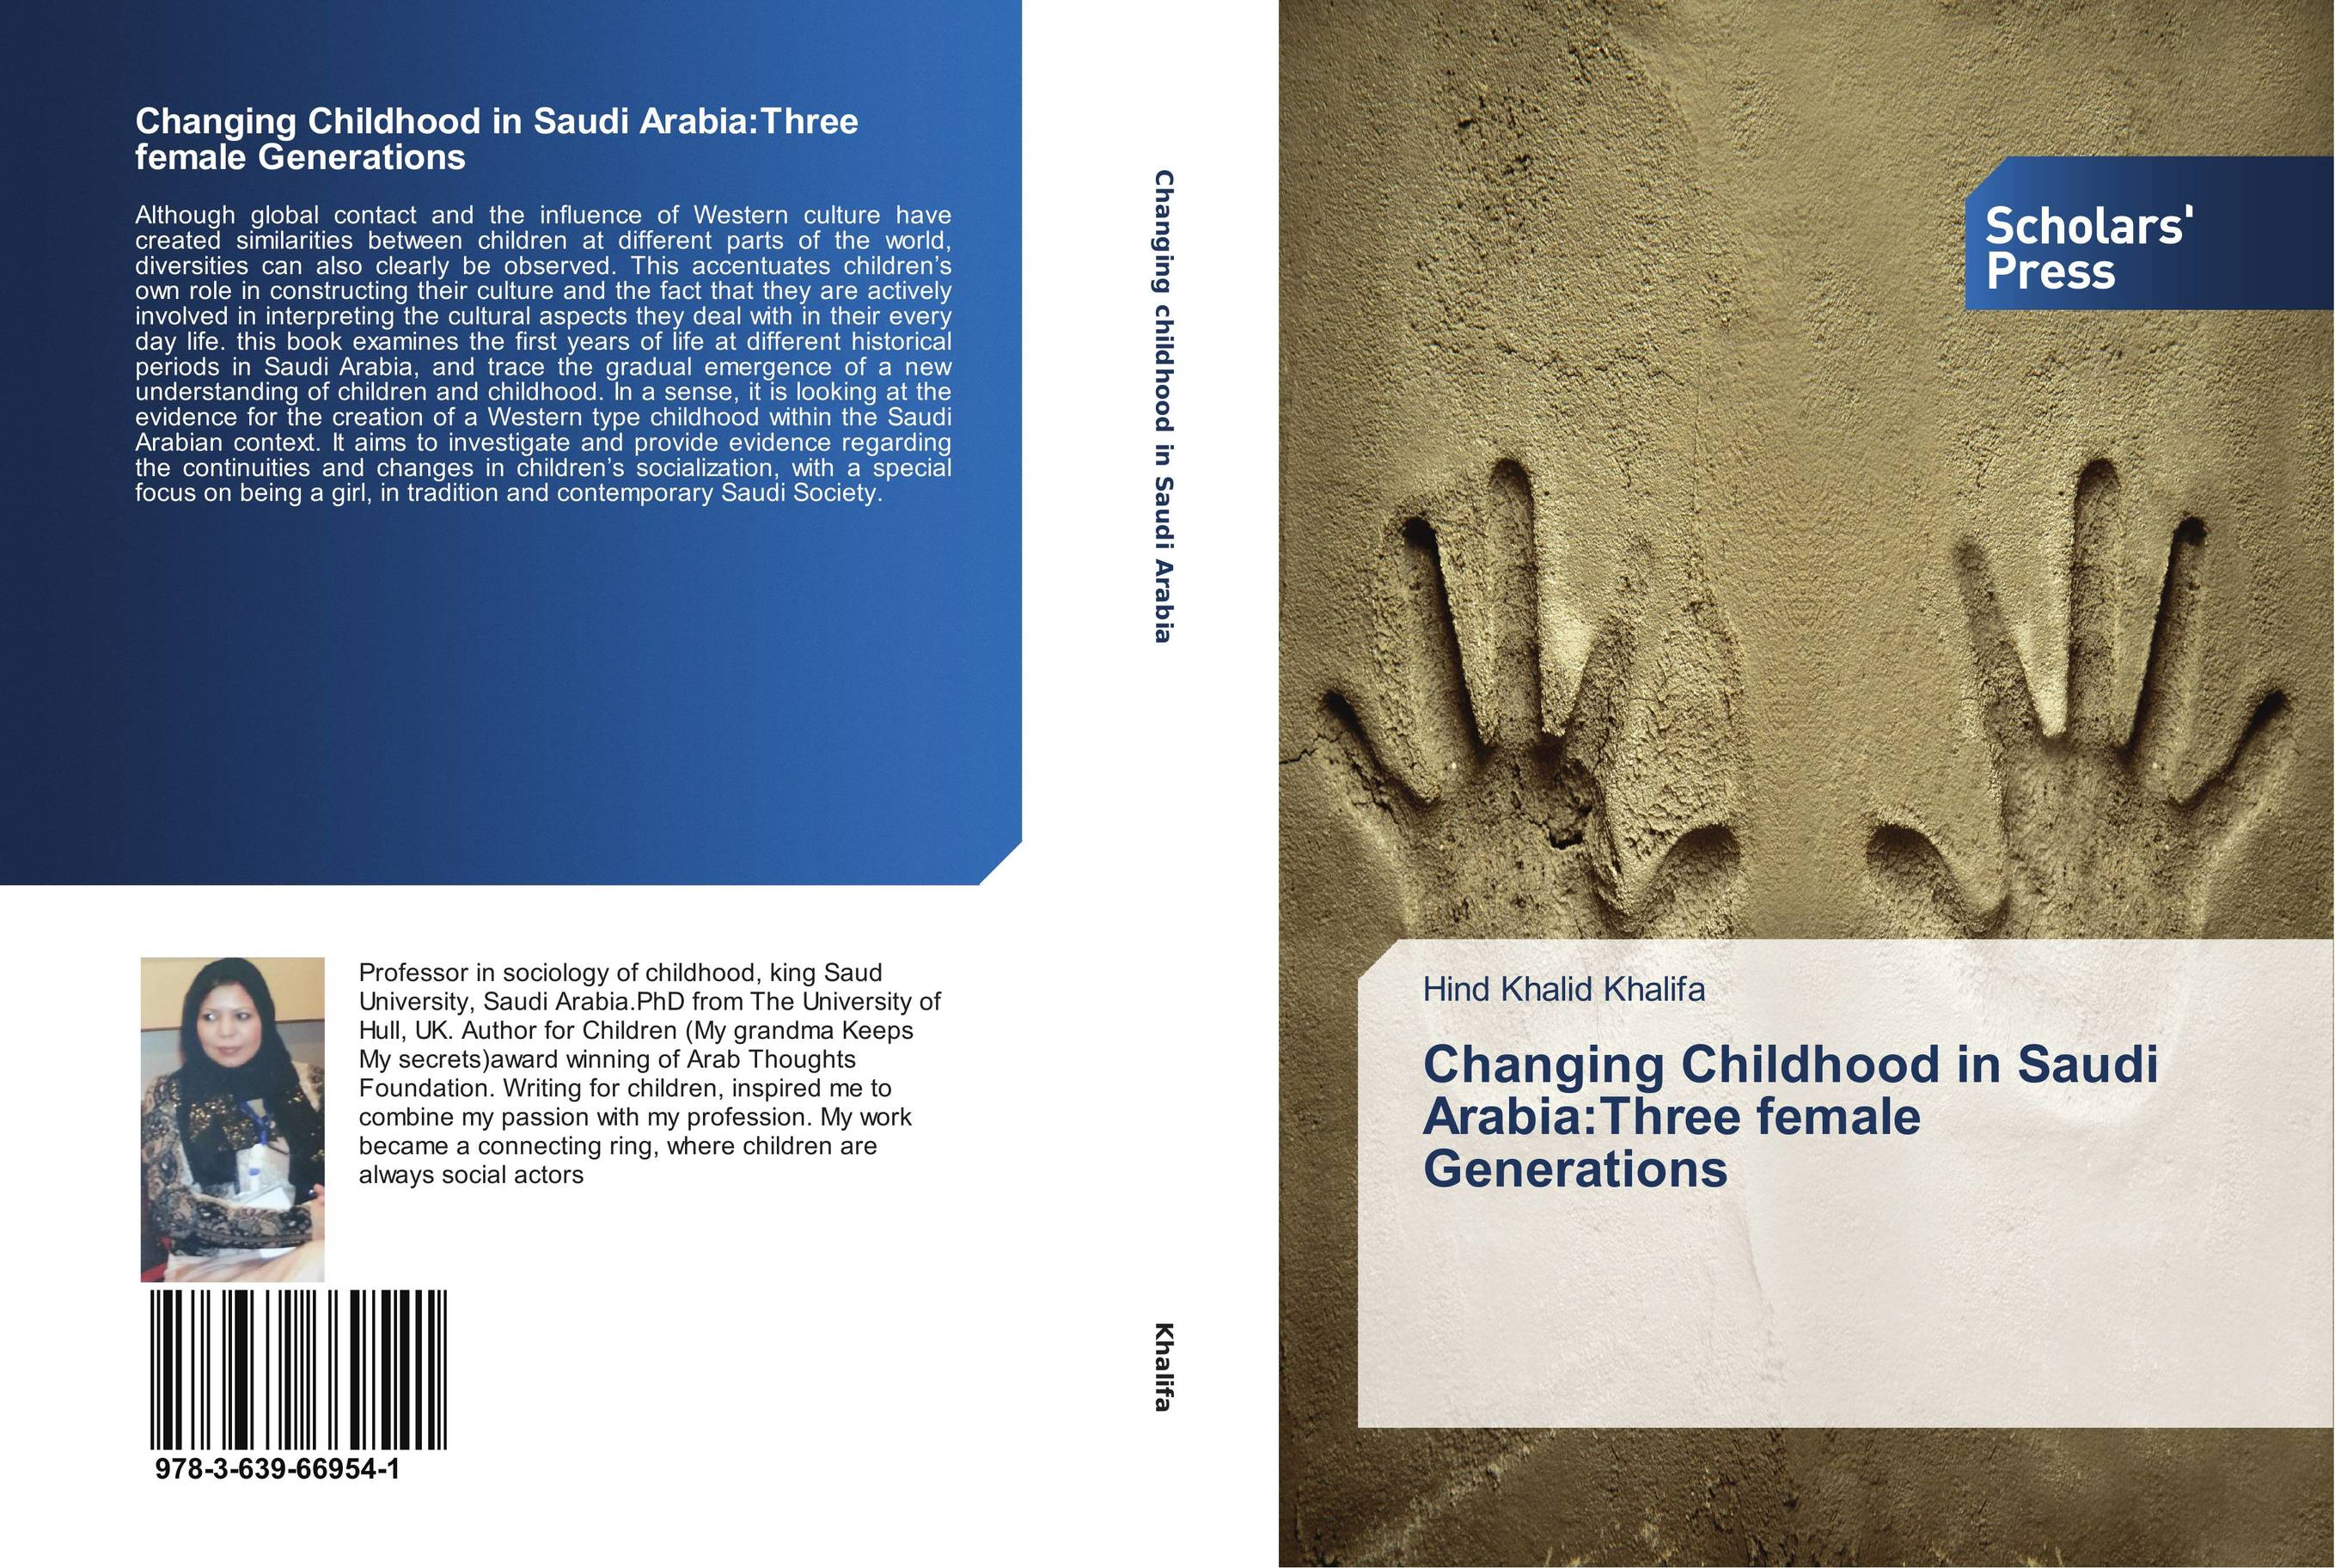 changes in child socialization For children in american society, television, peer groups, and school are increasingly important agents of socialization some of these changes have negative consequences for child socialization, some are benign, and some are ambiguous it is evident that family trends and their consequences for.